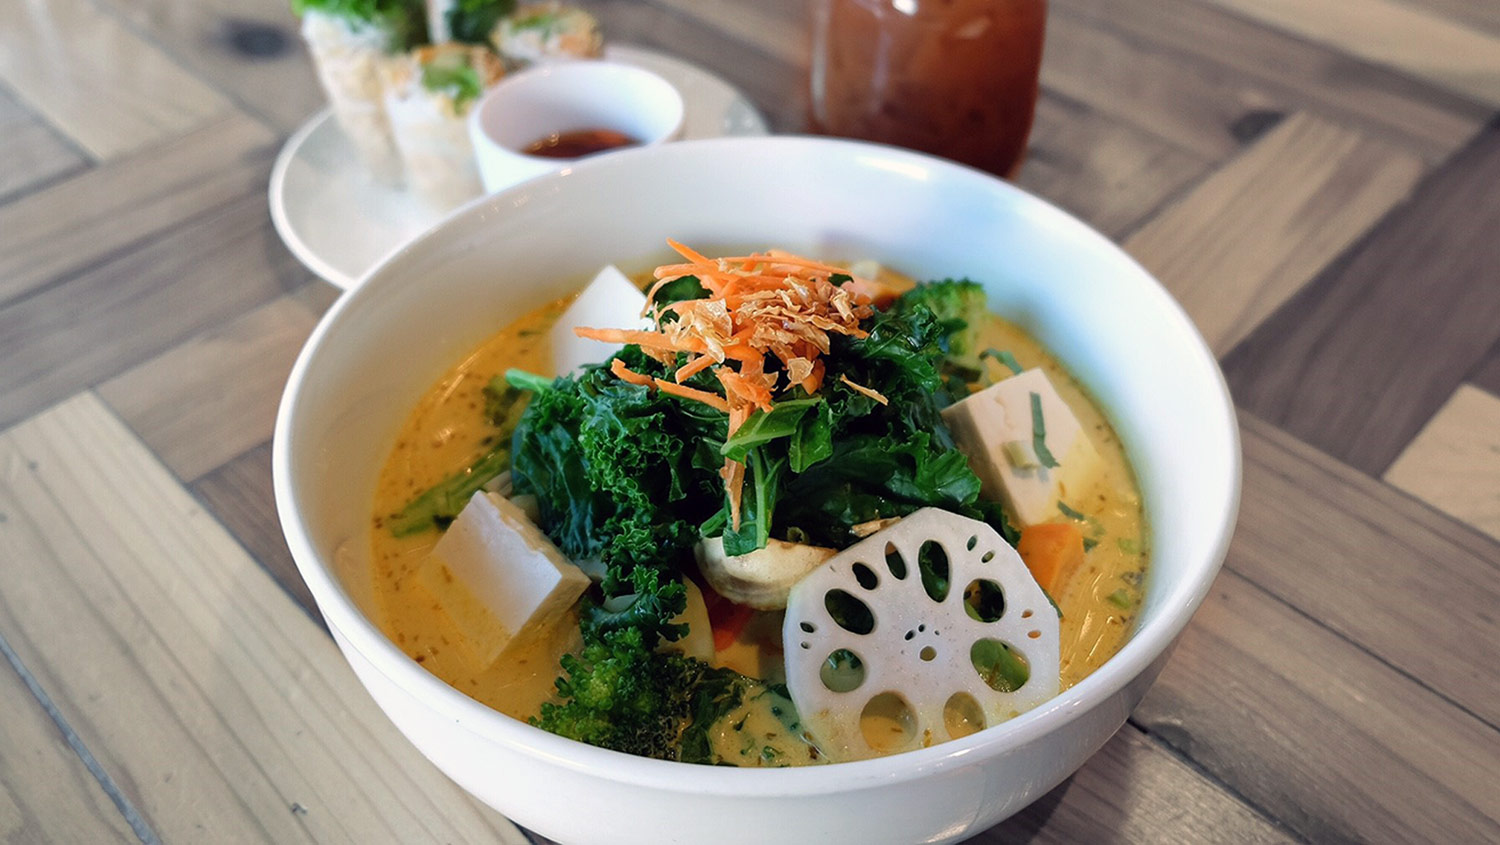 The Golden Temple Soup at Vancouver's Chau Veggie Express. Photo credit: Melly Woo.